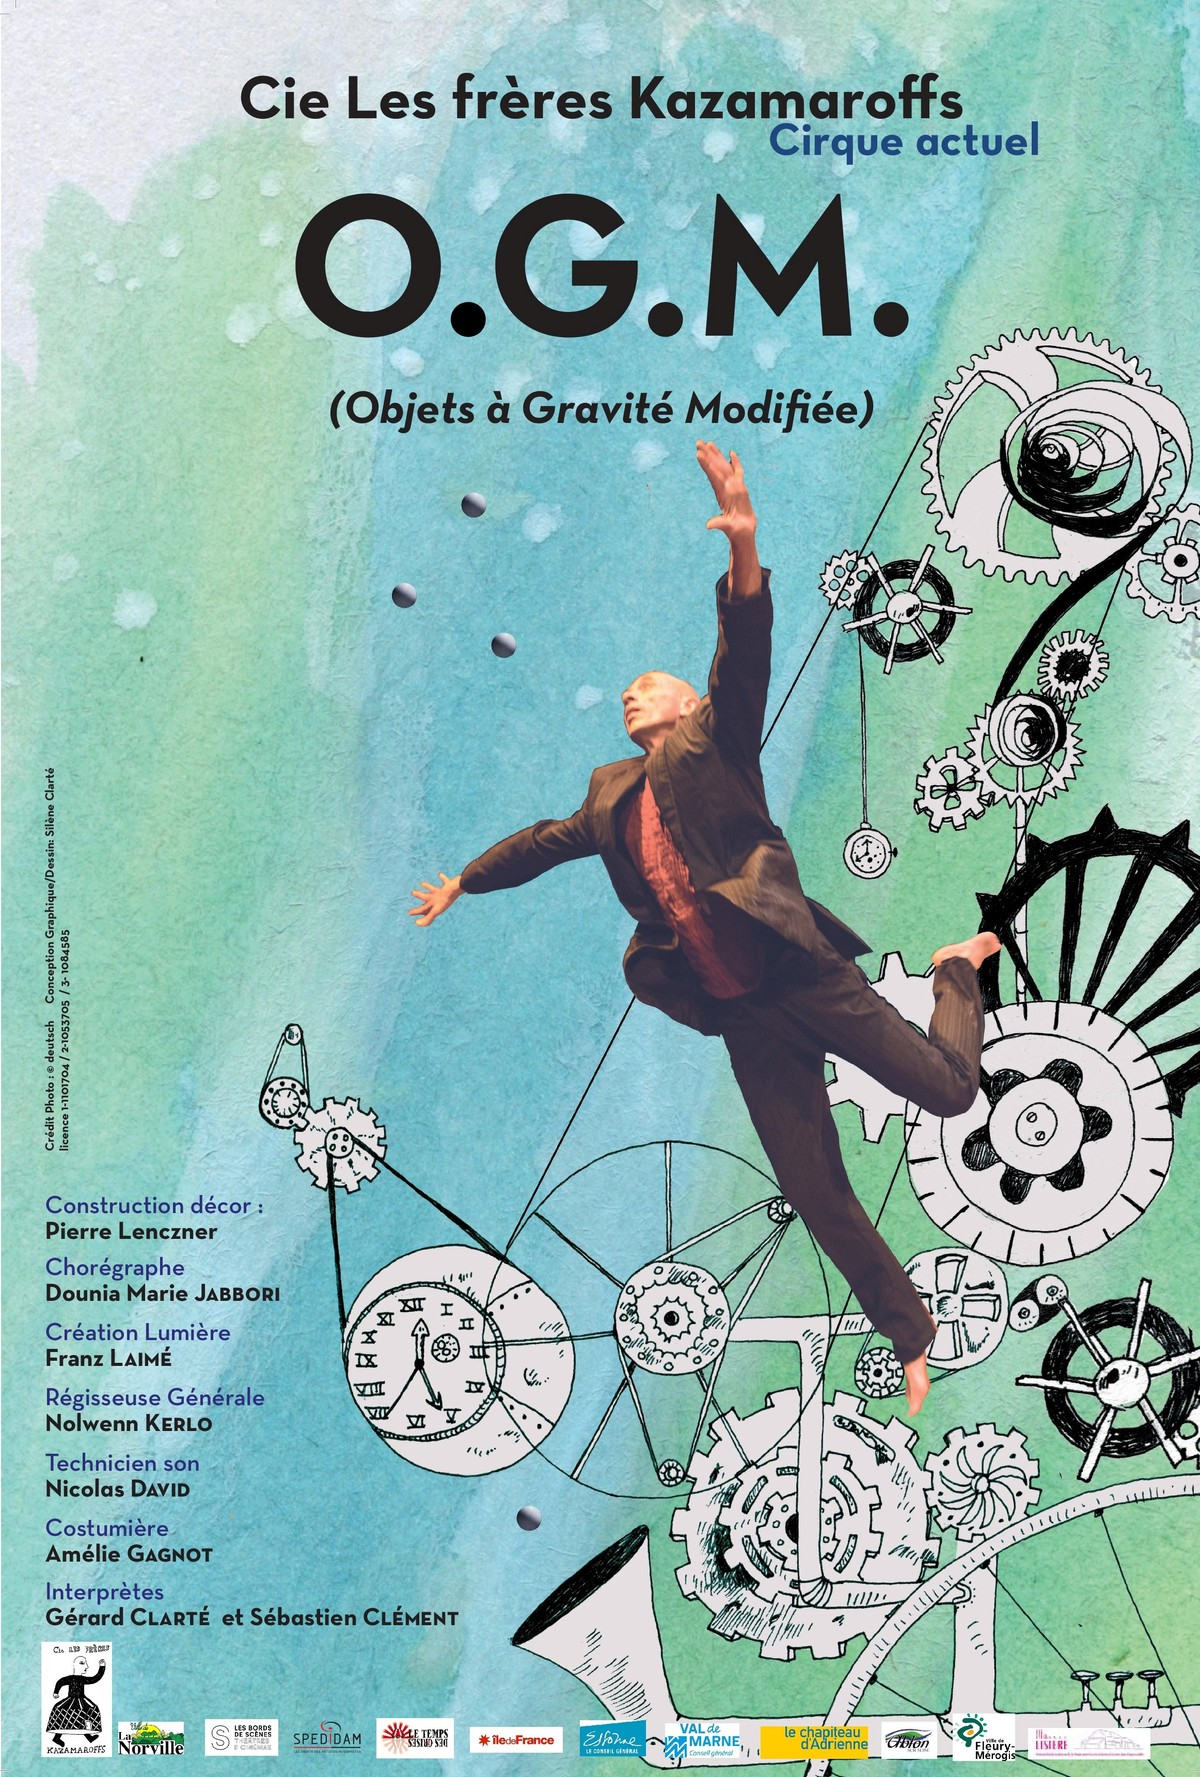 O.G.M. - Objects with Modified Gravity - Circus Events - CircusTalk